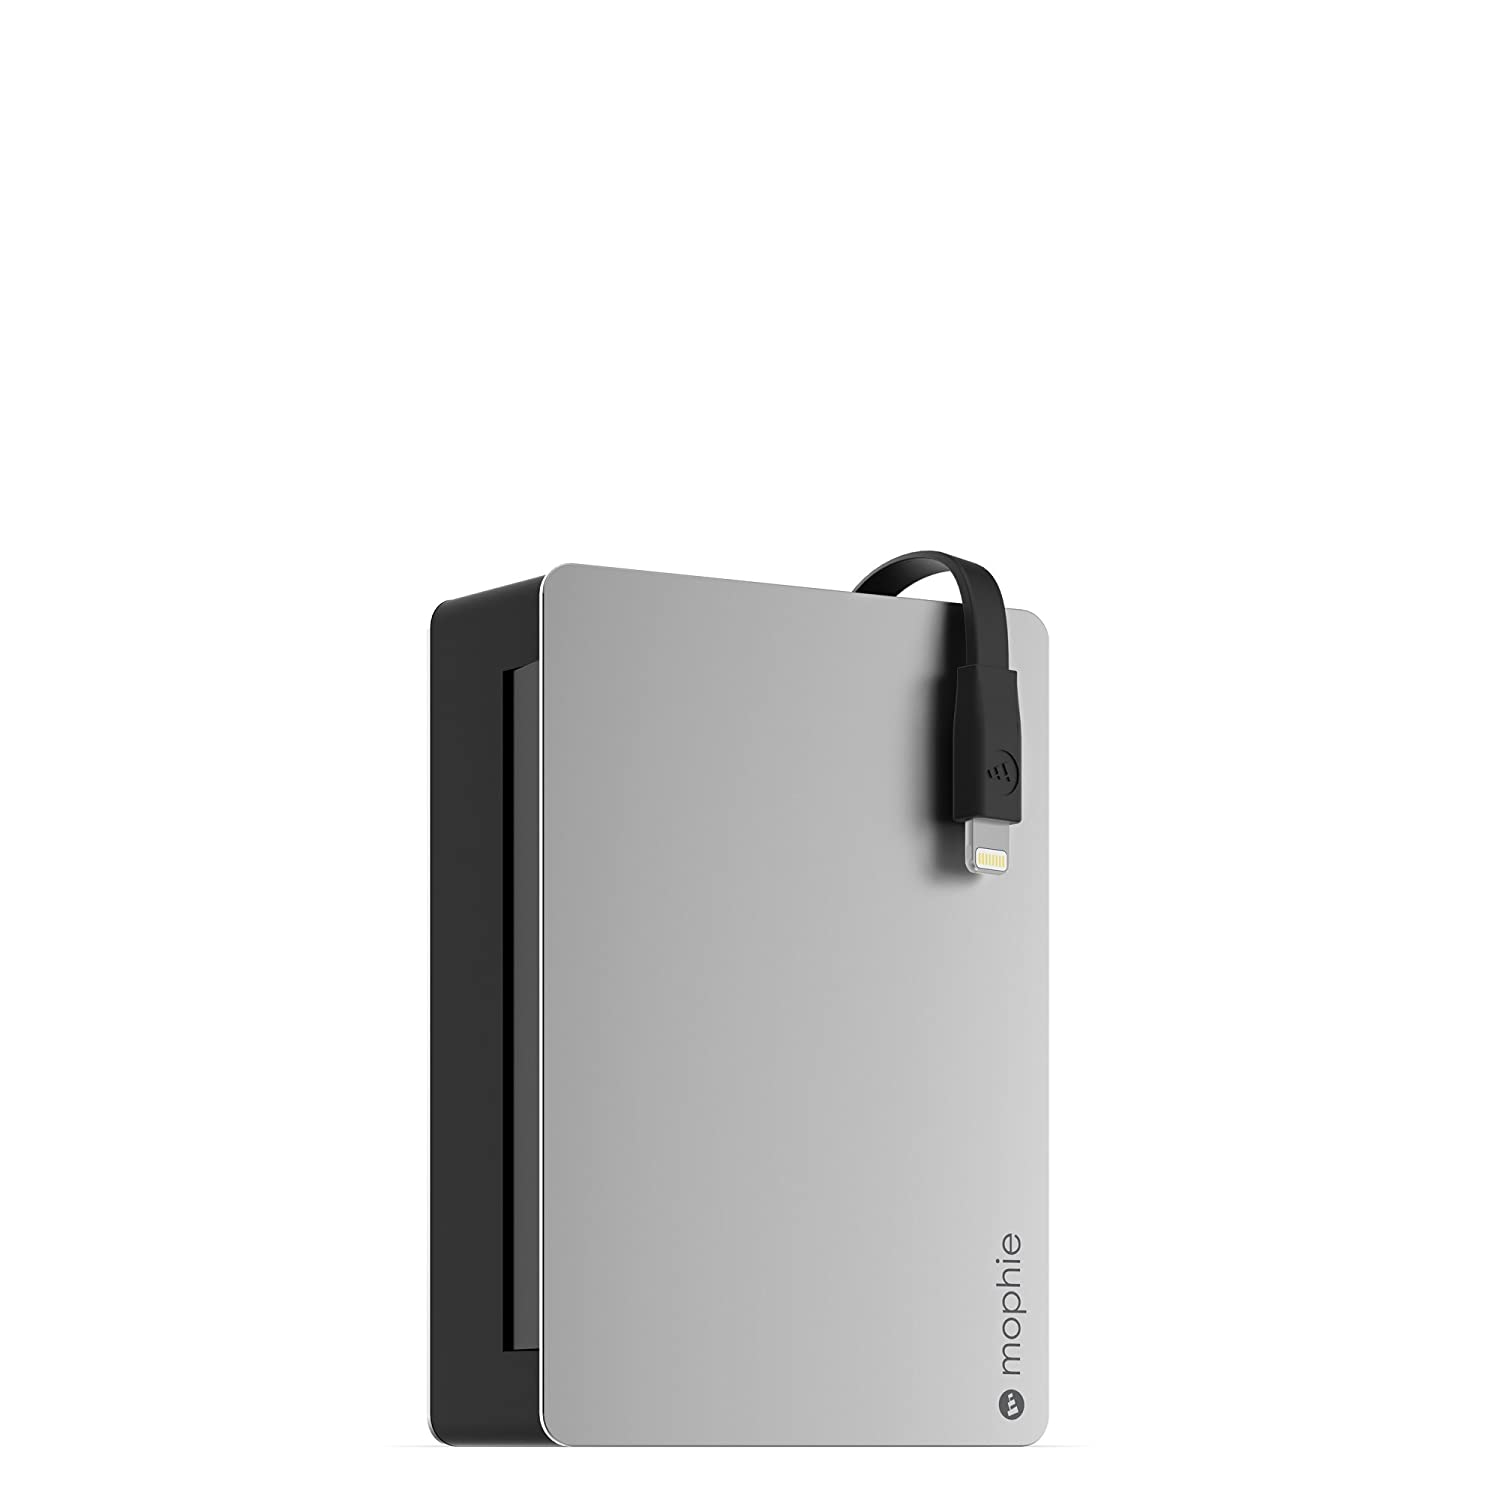 mophie powerstation Plus 2x with Integrated Lightning Connector Cable (3, 000mAh) - Black PWRSTION-3CL-BLK